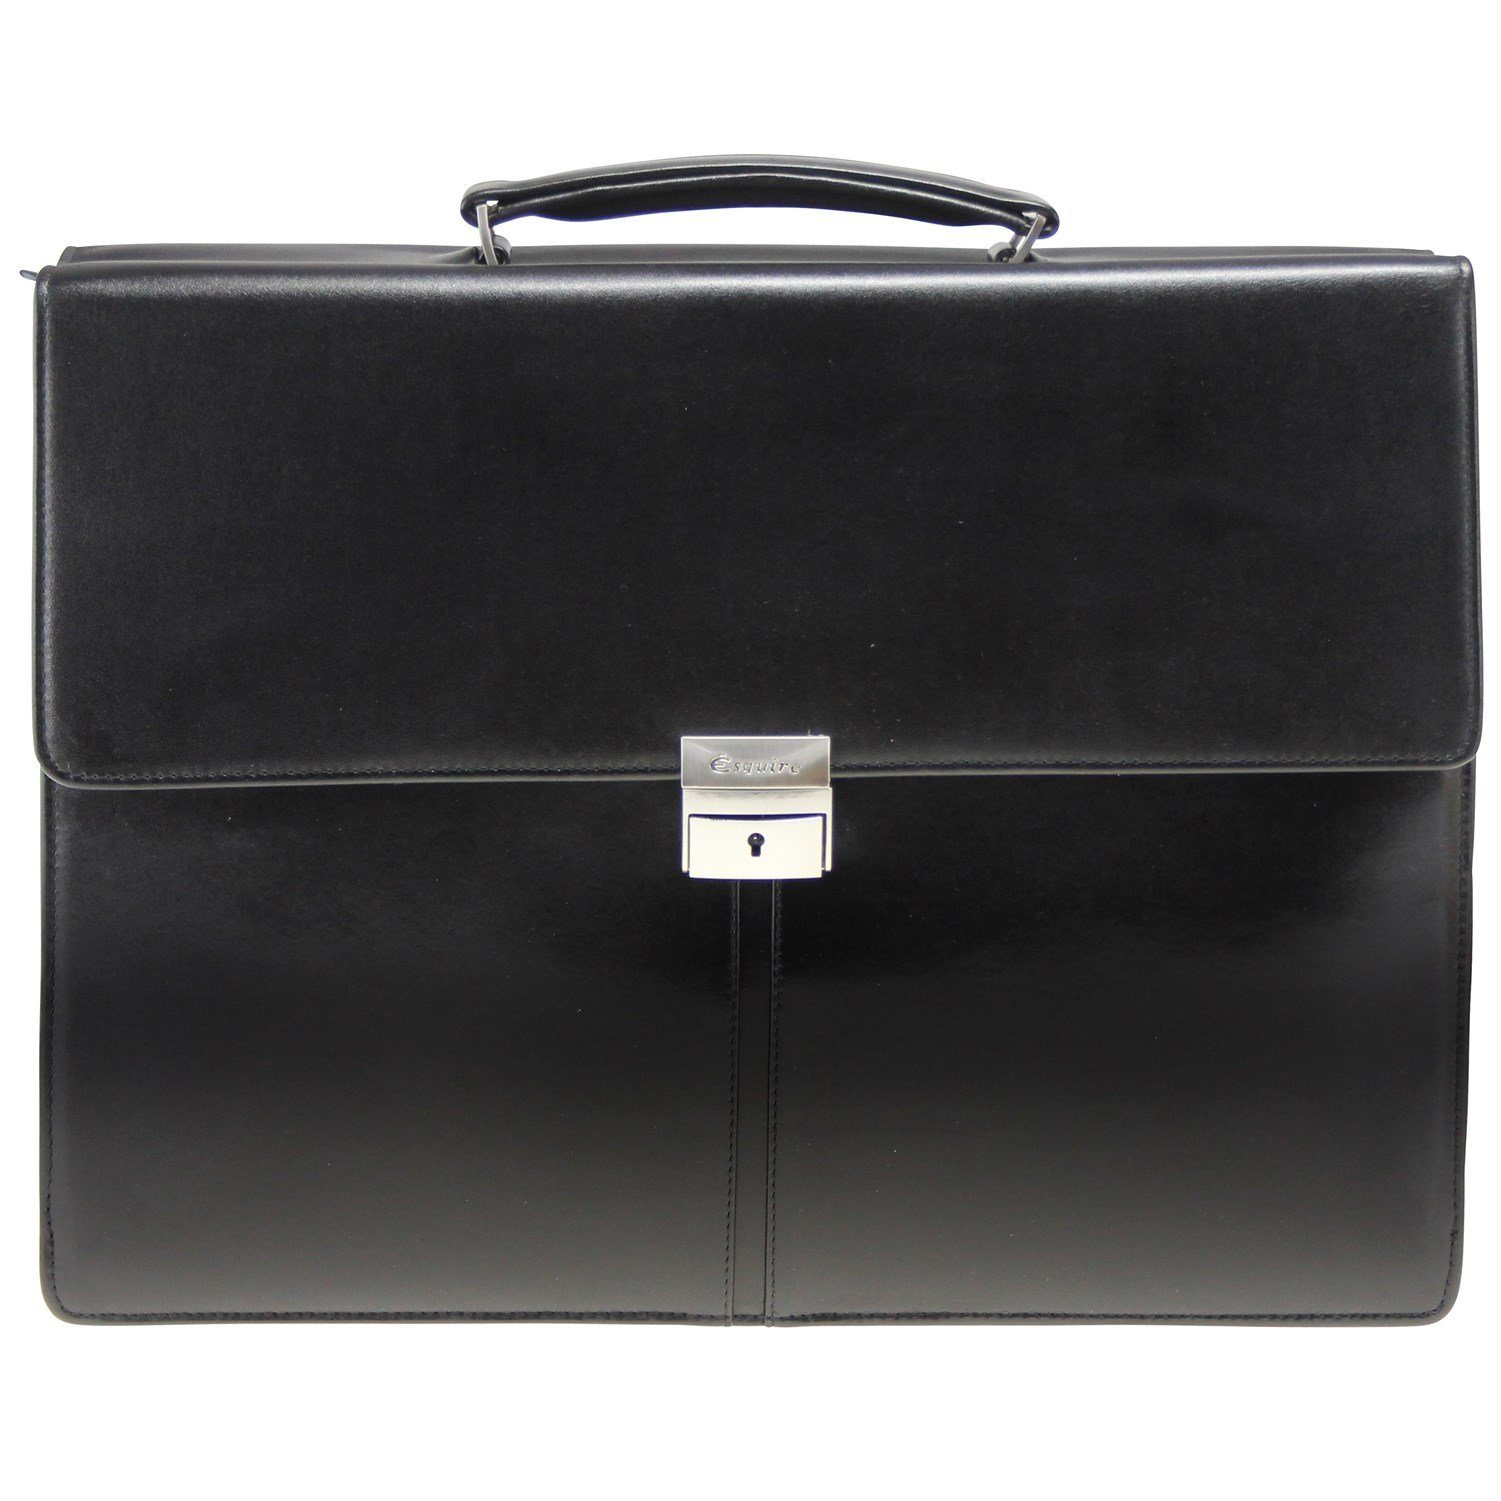 Esquire Aktentasche Leder 40 cm Laptopfach